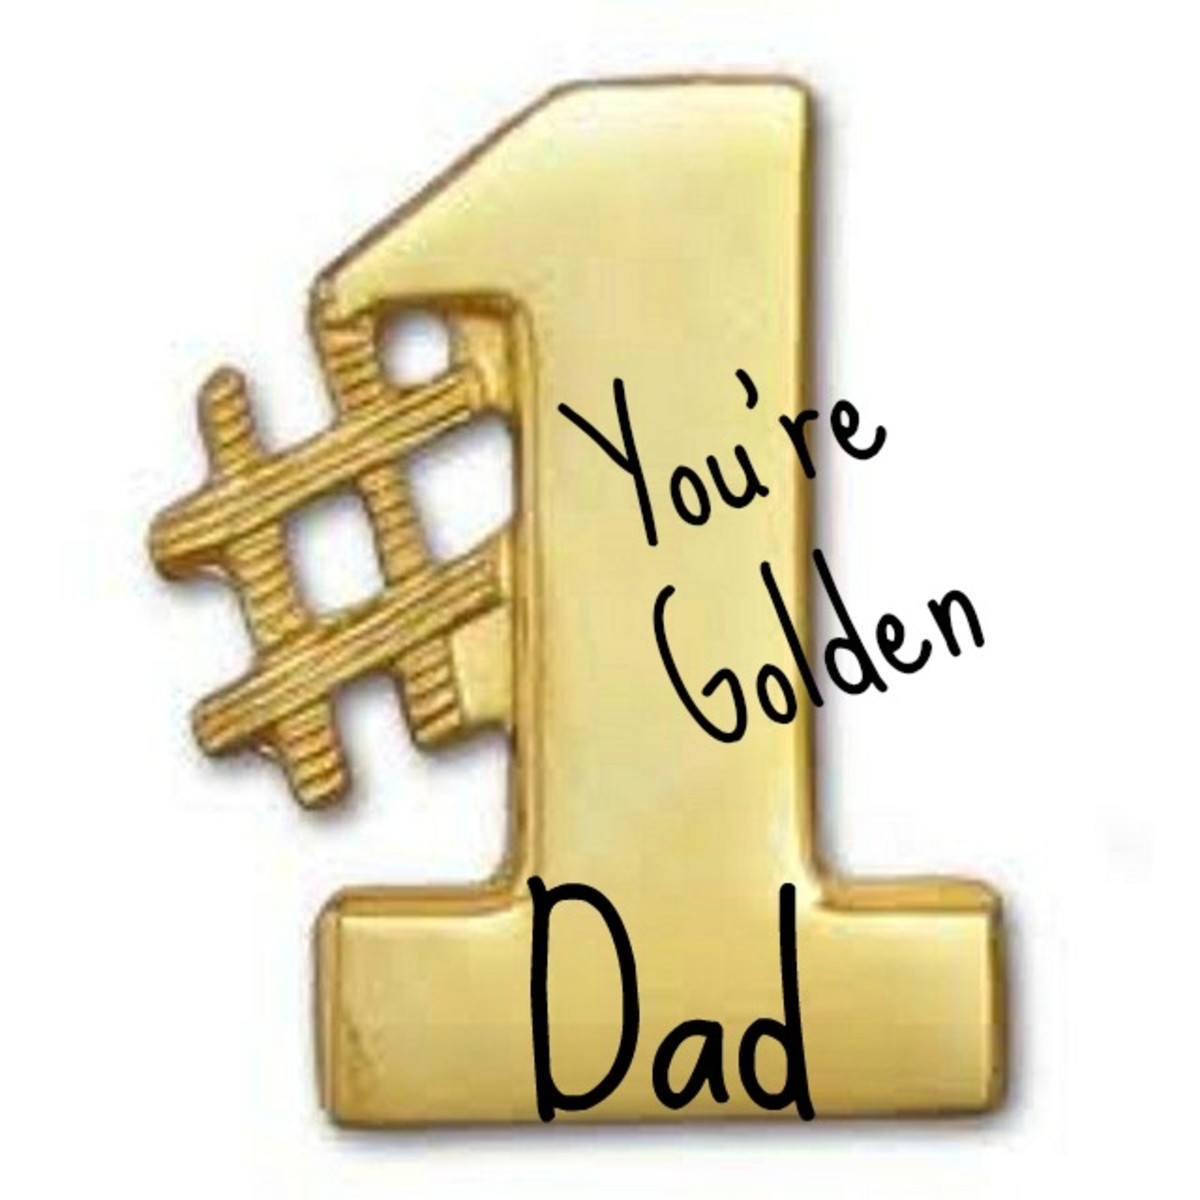 Golden #1 Dad Clip Art